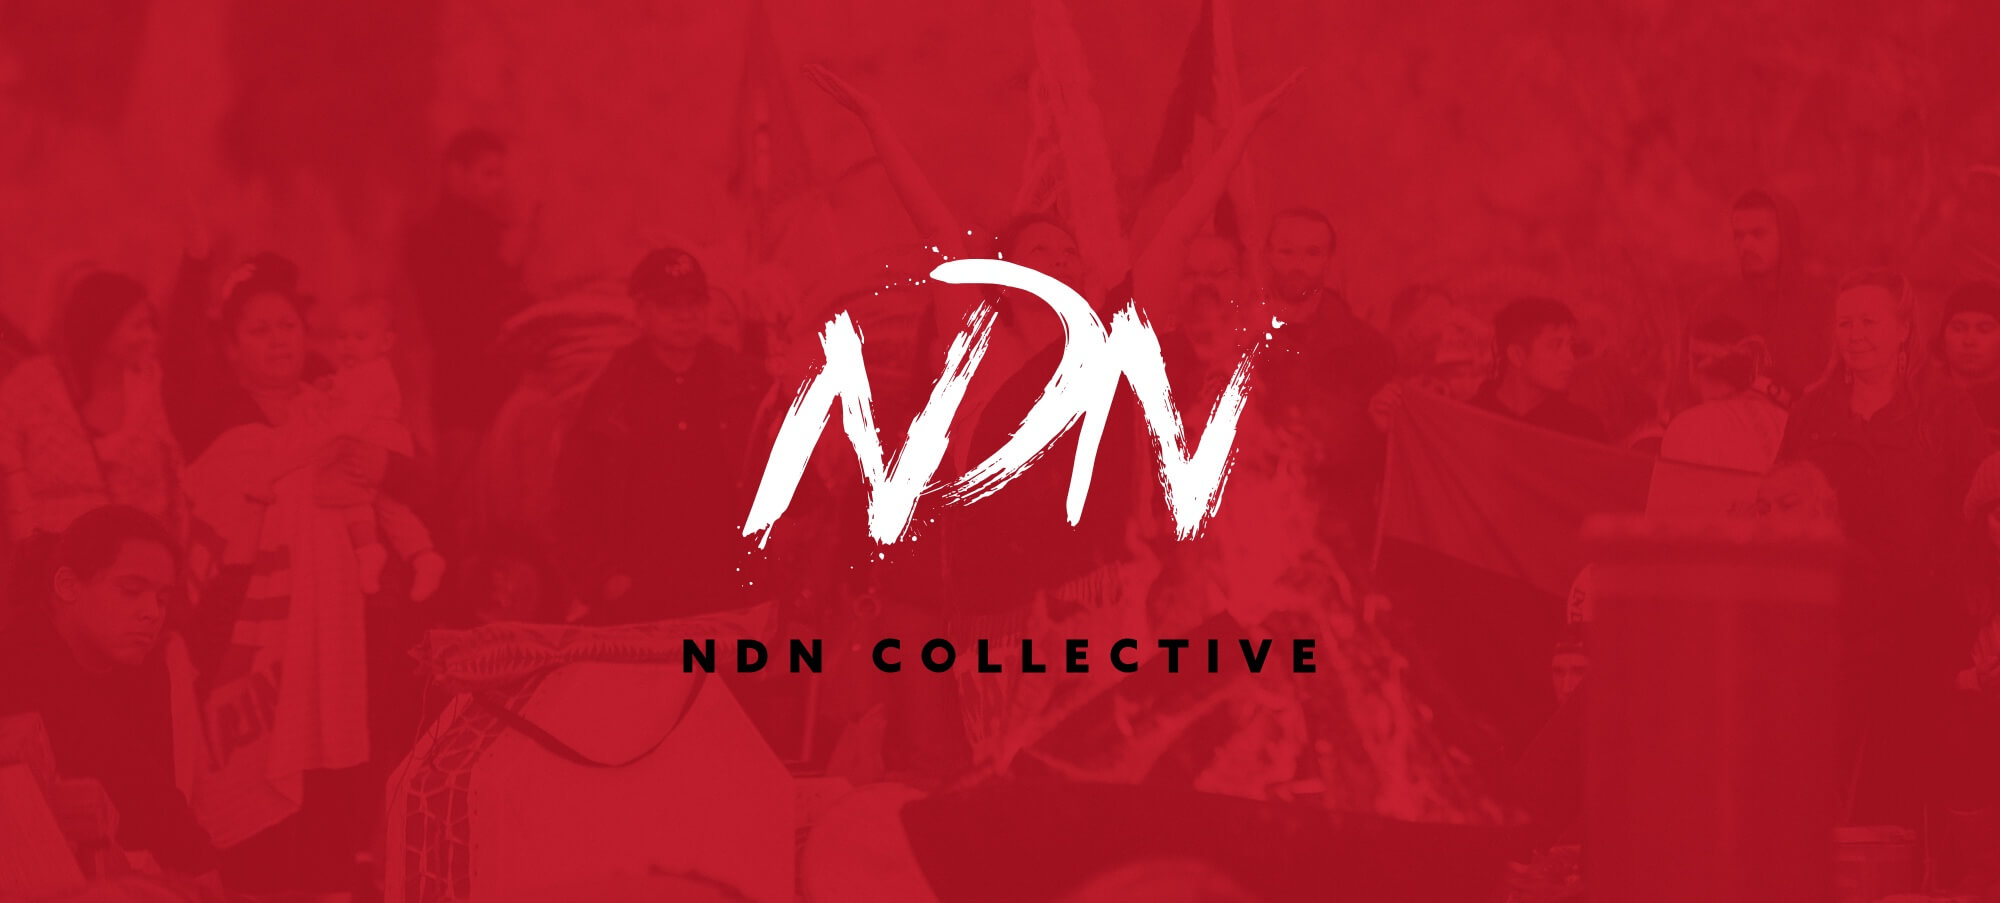 NDN collective graphic